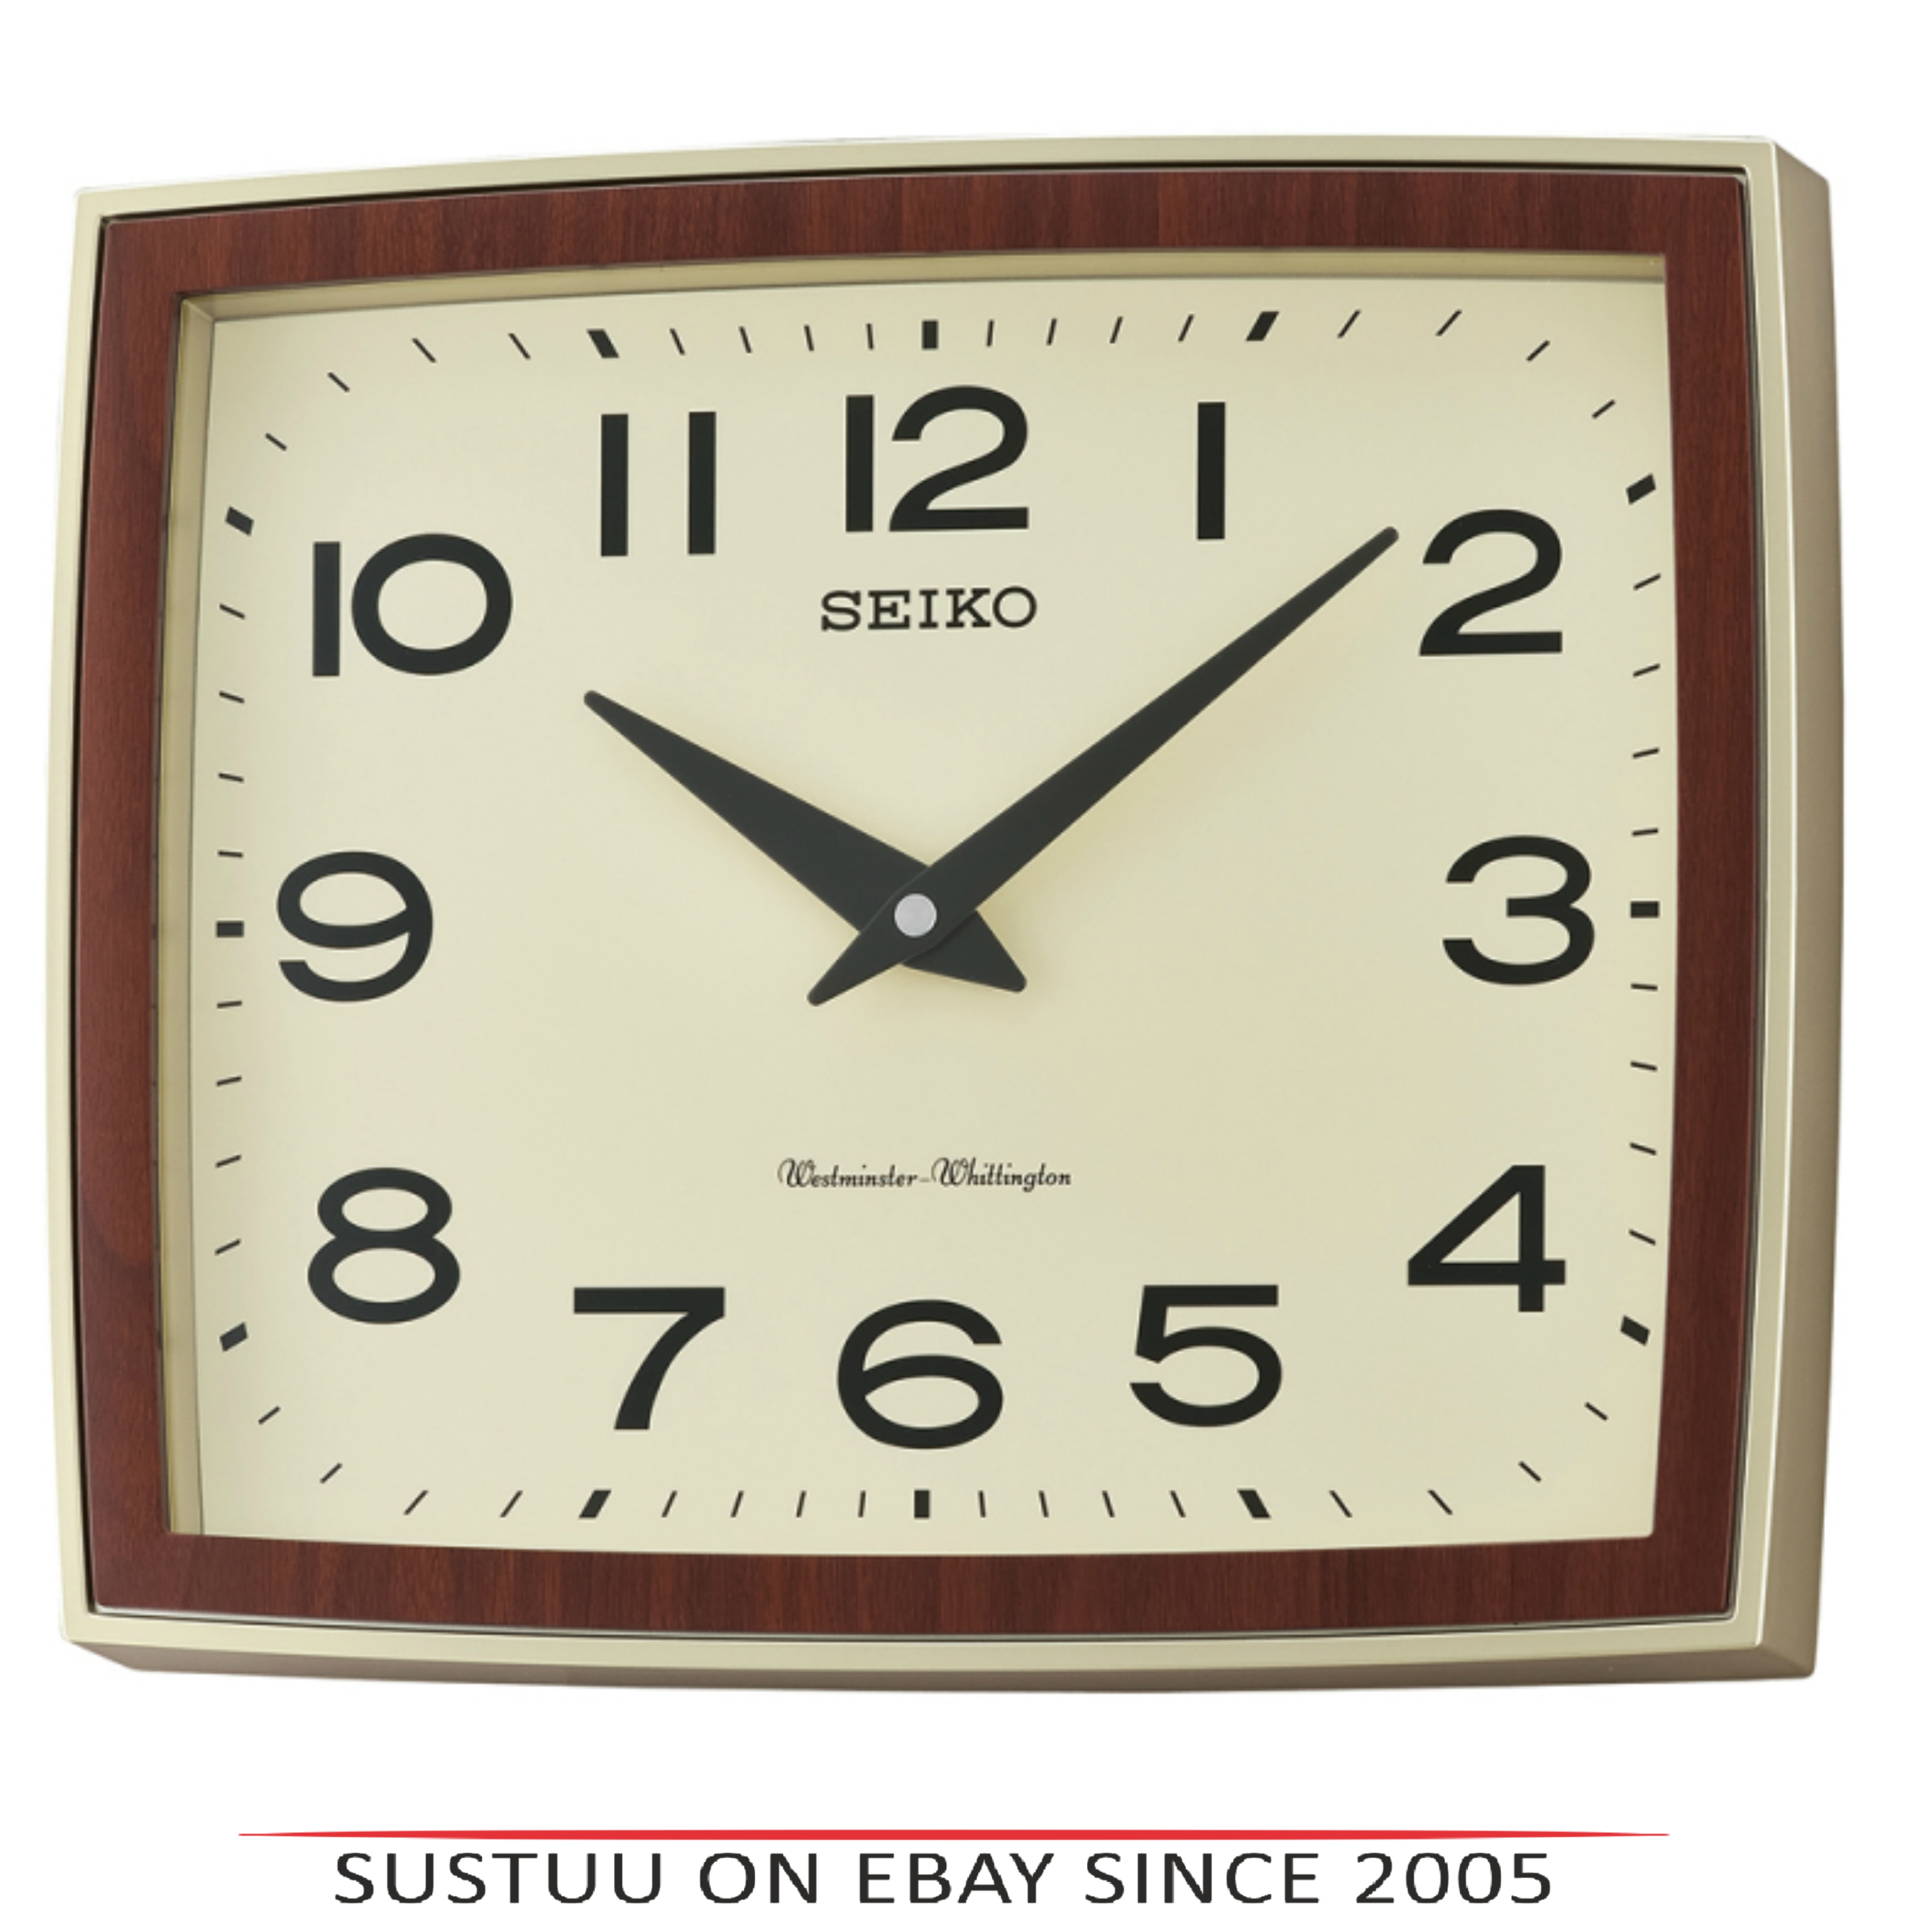 Seiko QXD211S Westminster/Whittington Dual Chime Arabic Wall Clock - Brown Case